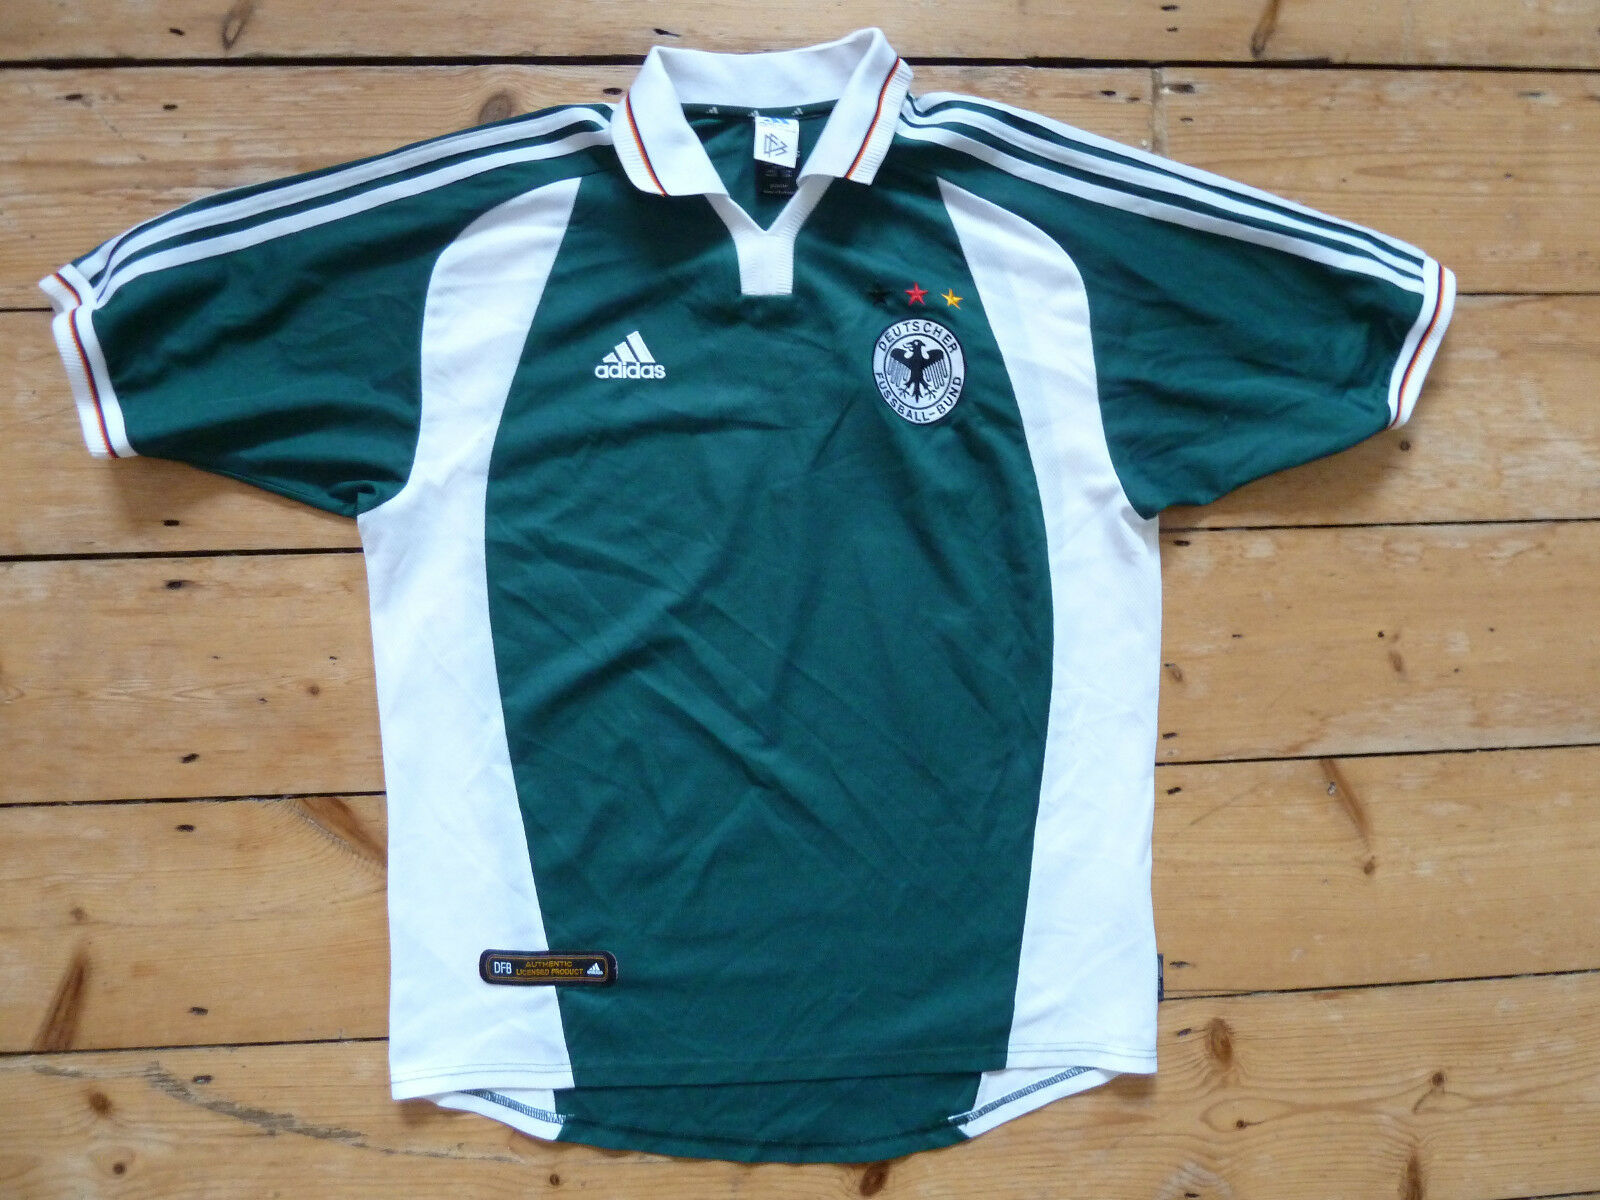 Allemagne Maillot de Foot Grand 2000 Allemand Football Euro 16 Maglia Tricot